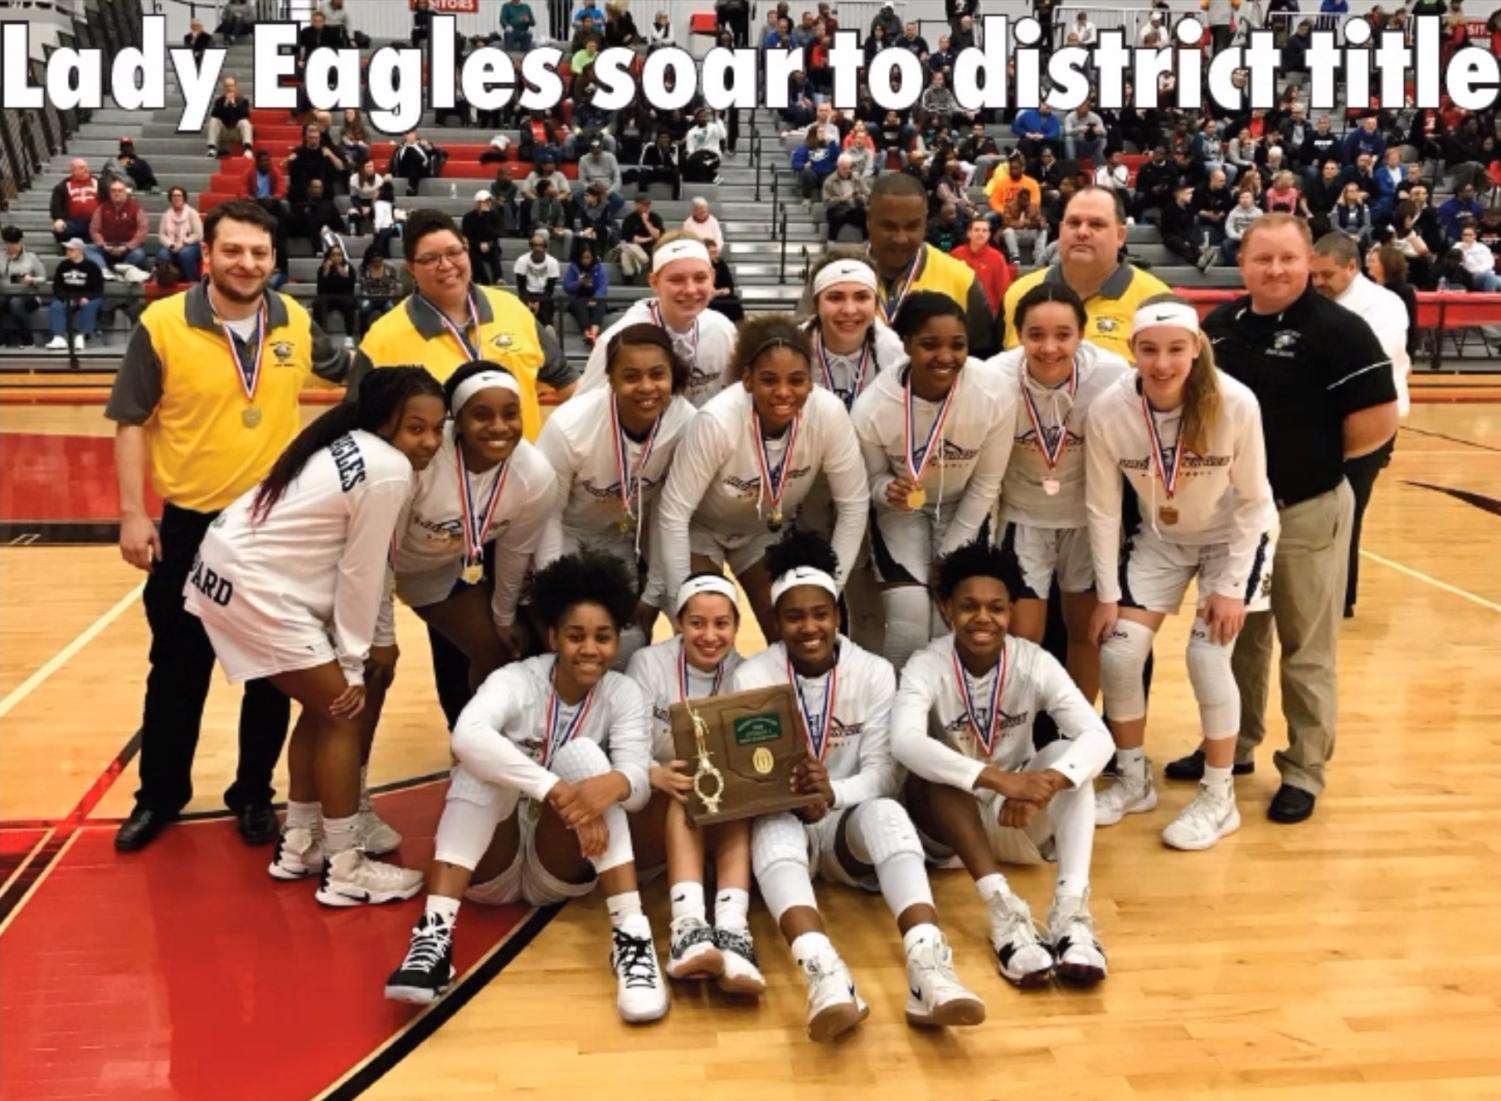 The Lady Eagles celebrate as a team as they show off their recently awarded OHSAA District champion trophy and medals. After beating Huber Heights Wayne to win this title at the district level, they advanced to play Centerville High School in the regional semifinals, where they lost 54-39 in a hard-fought effort.